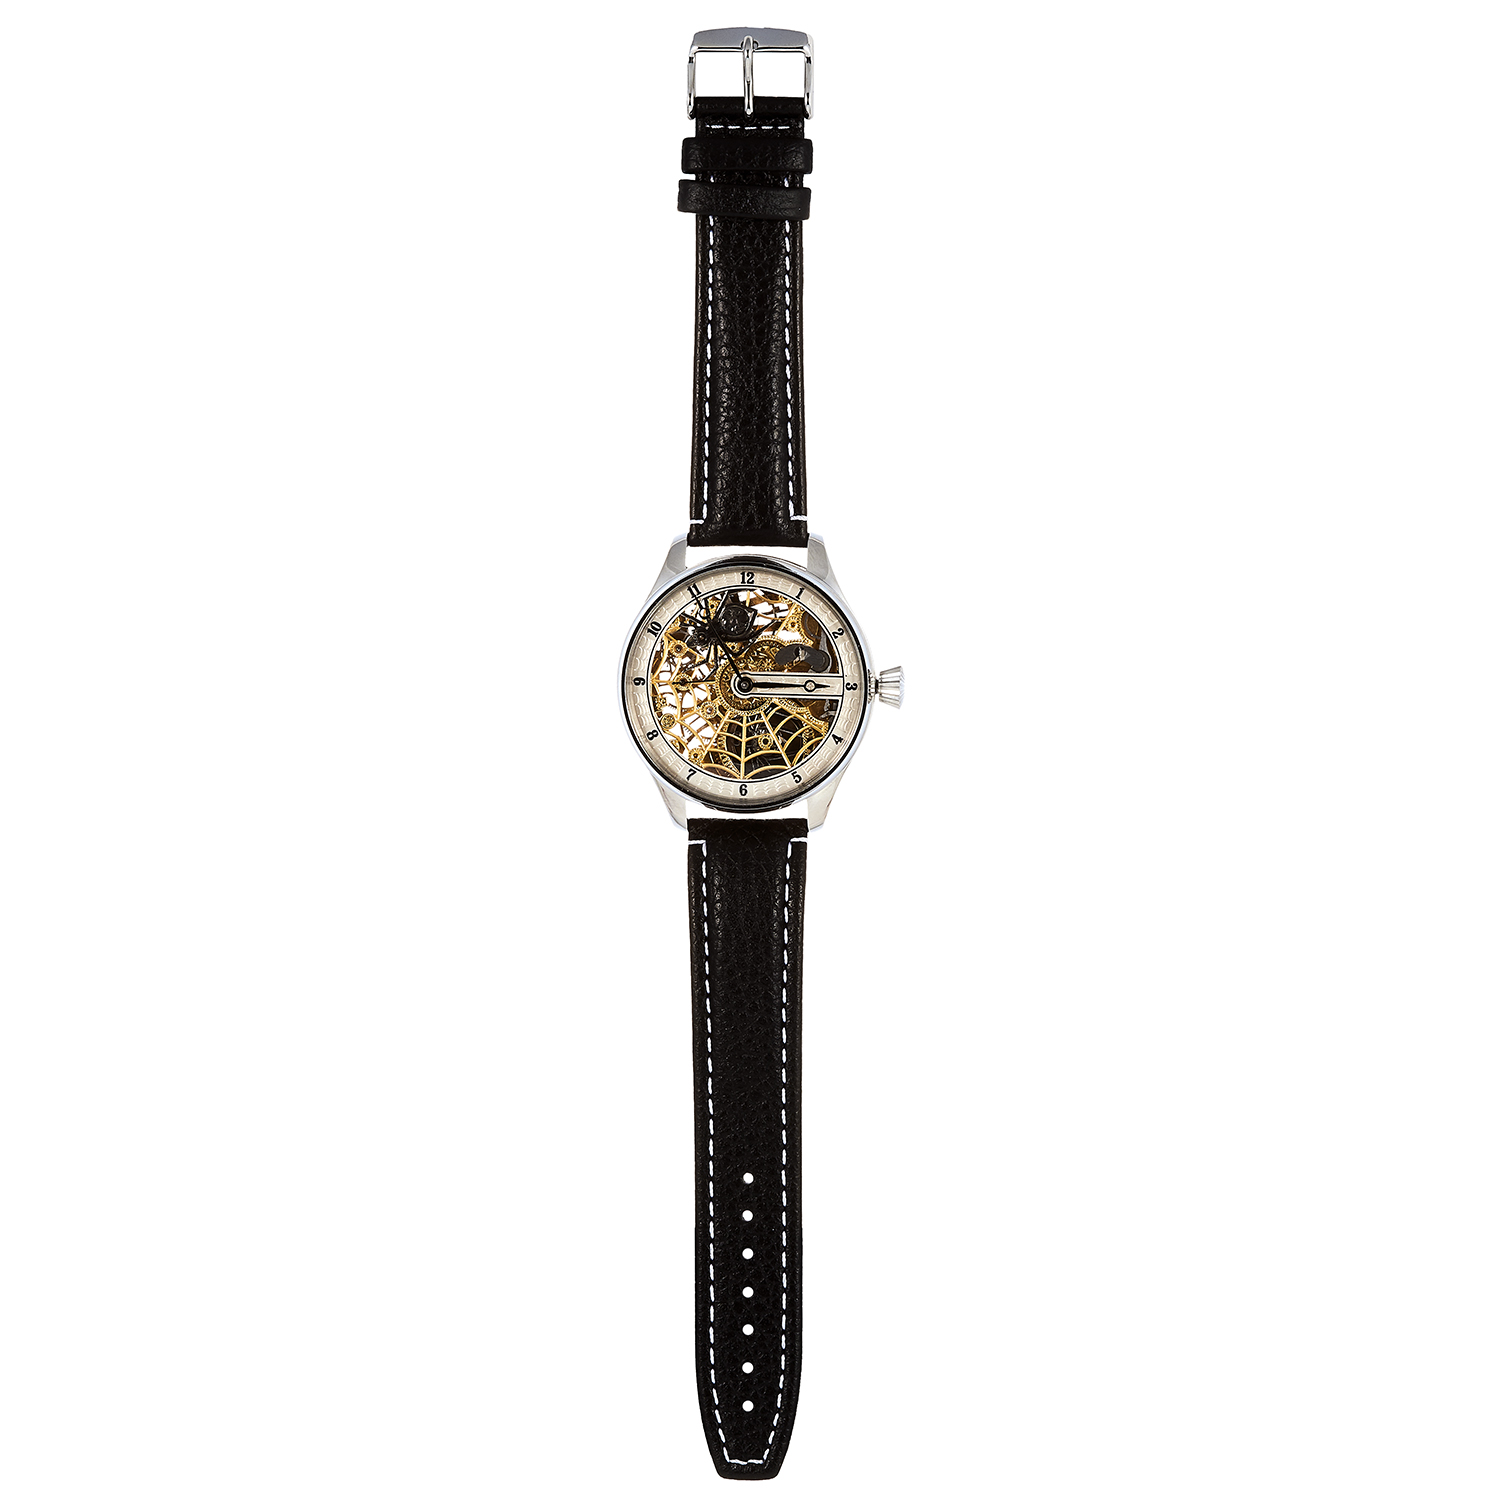 Los 388 - A GENTLEMAN'S WRISTWATCH, OMEGA MOVEMENT the circular 53mm case with openwork glass design,